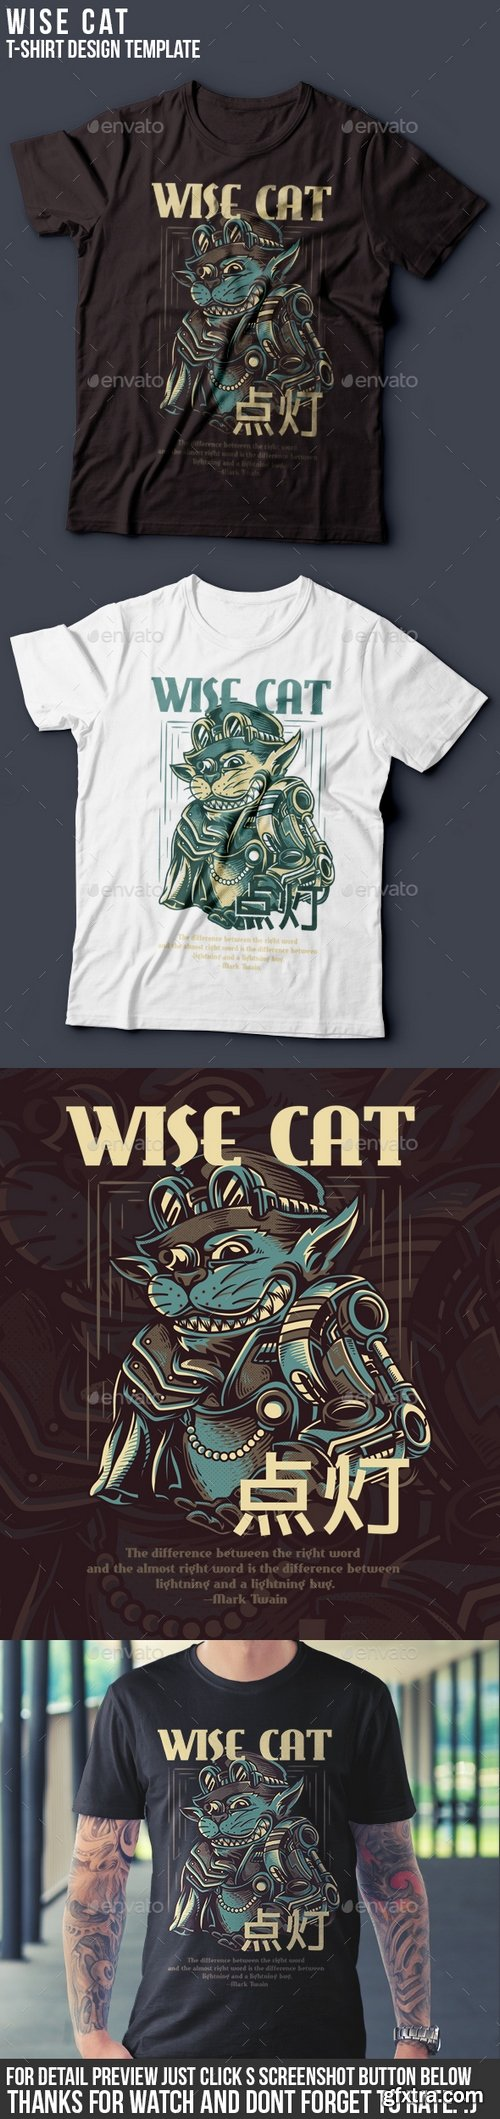 Graphicriver - Wise Cat T-Shirt Design 22143150